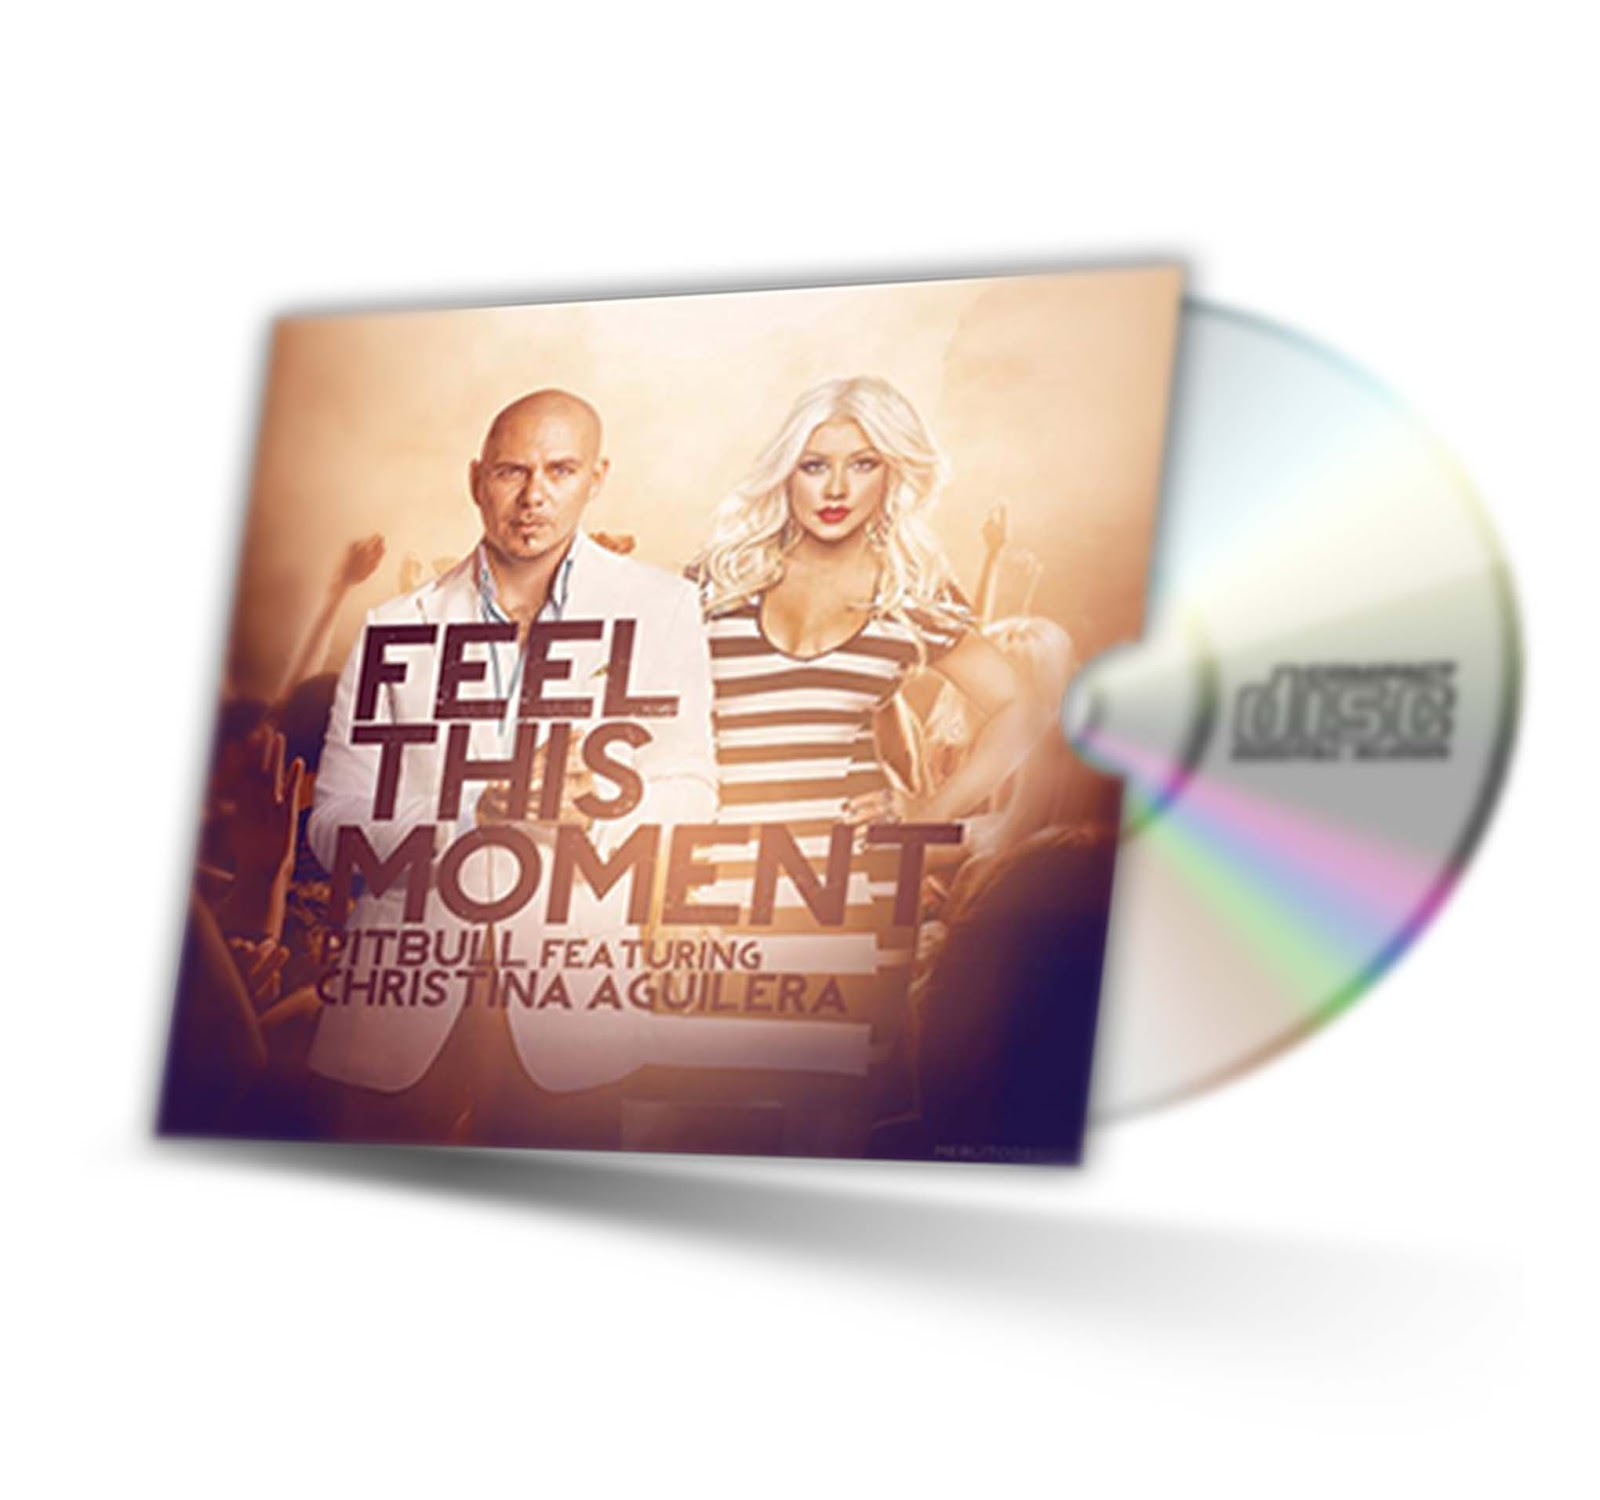 http://3.bp.blogspot.com/-TI1vPANABQo/UIY7CIGB1SI/AAAAAAAAEcY/jB4JA2h4UTY/s1600/Pitbull+Ft+Christina+Aguilera+-+Feel+This+Moment.jpg